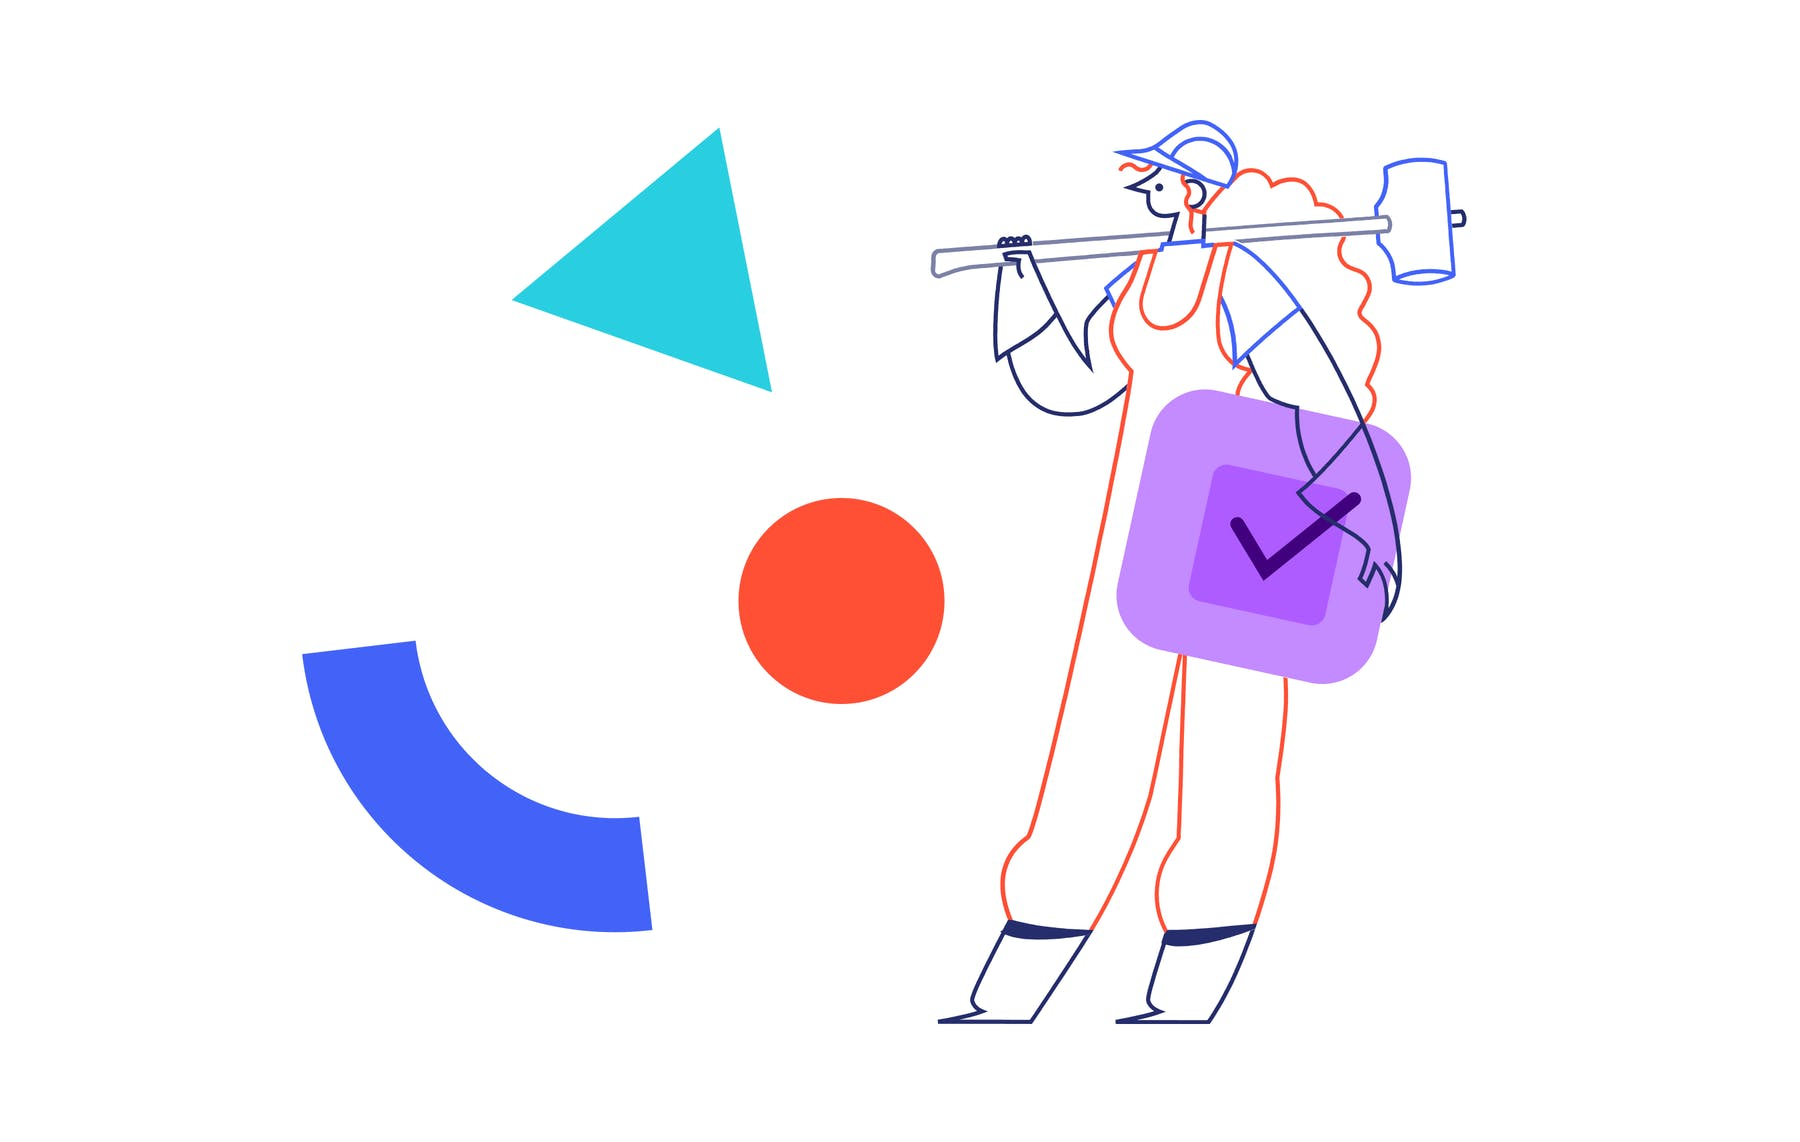 a long-haired female construction worker with a sledgehammer looking at random shapes